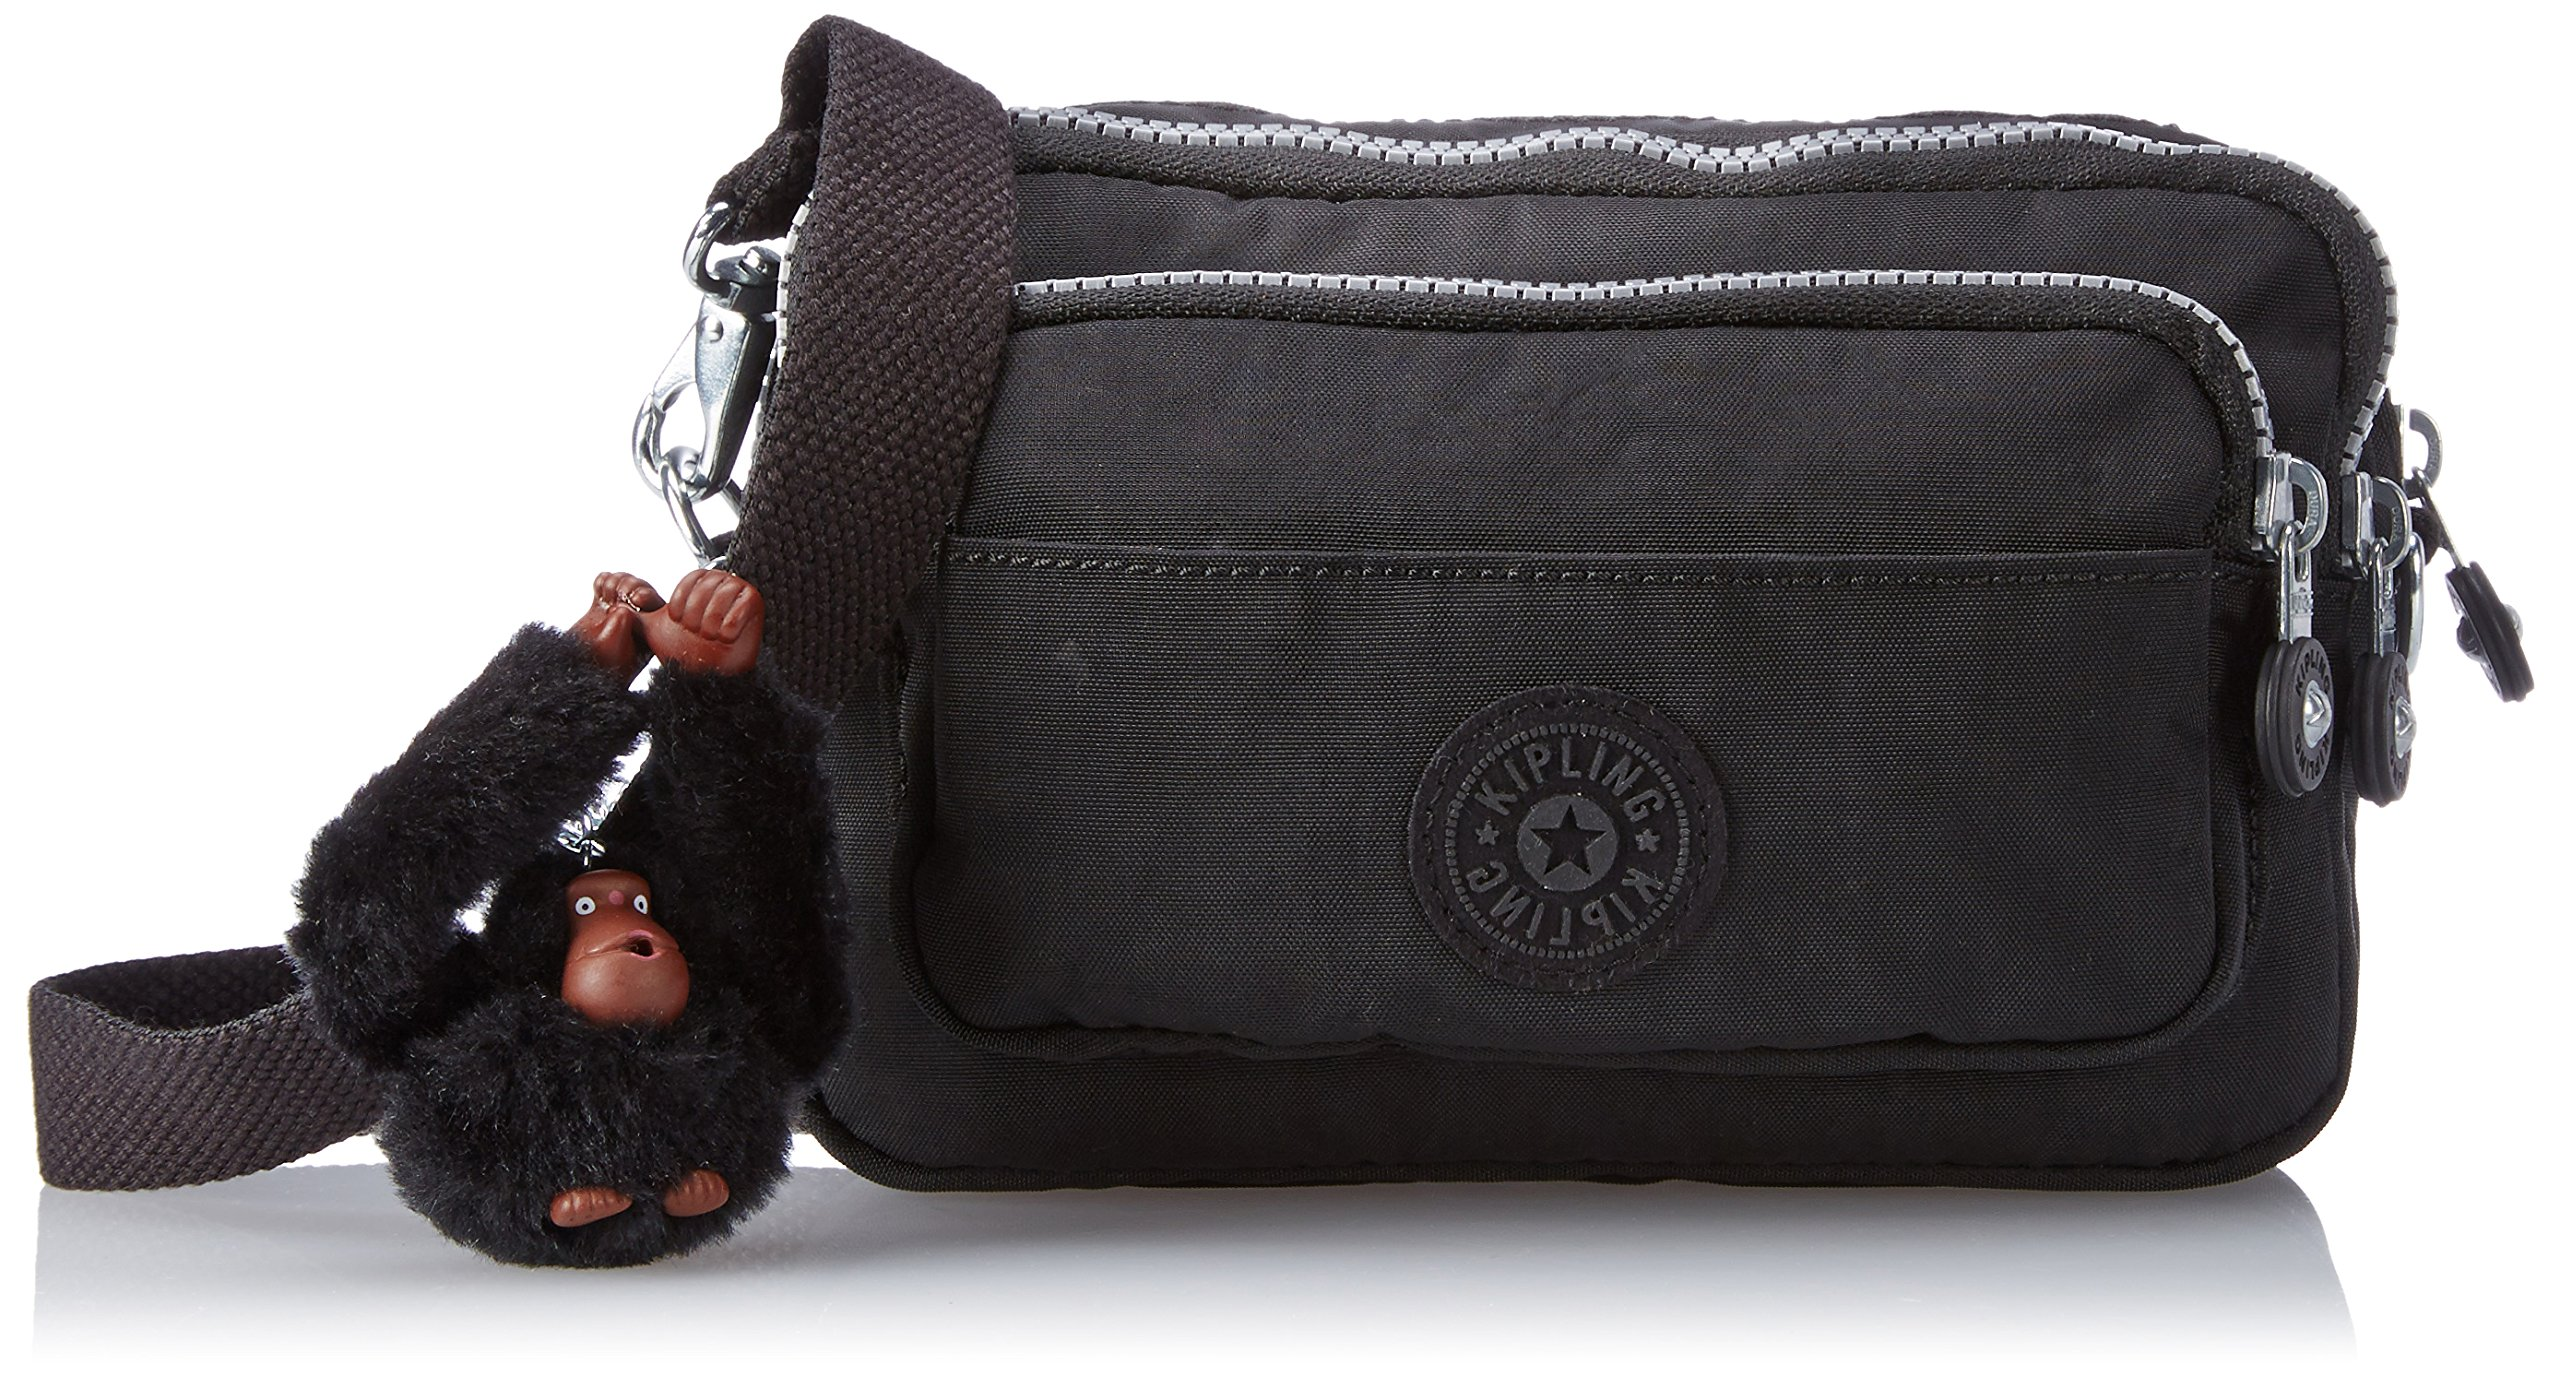 Kipling Merryl Waist bag, Black, One Size